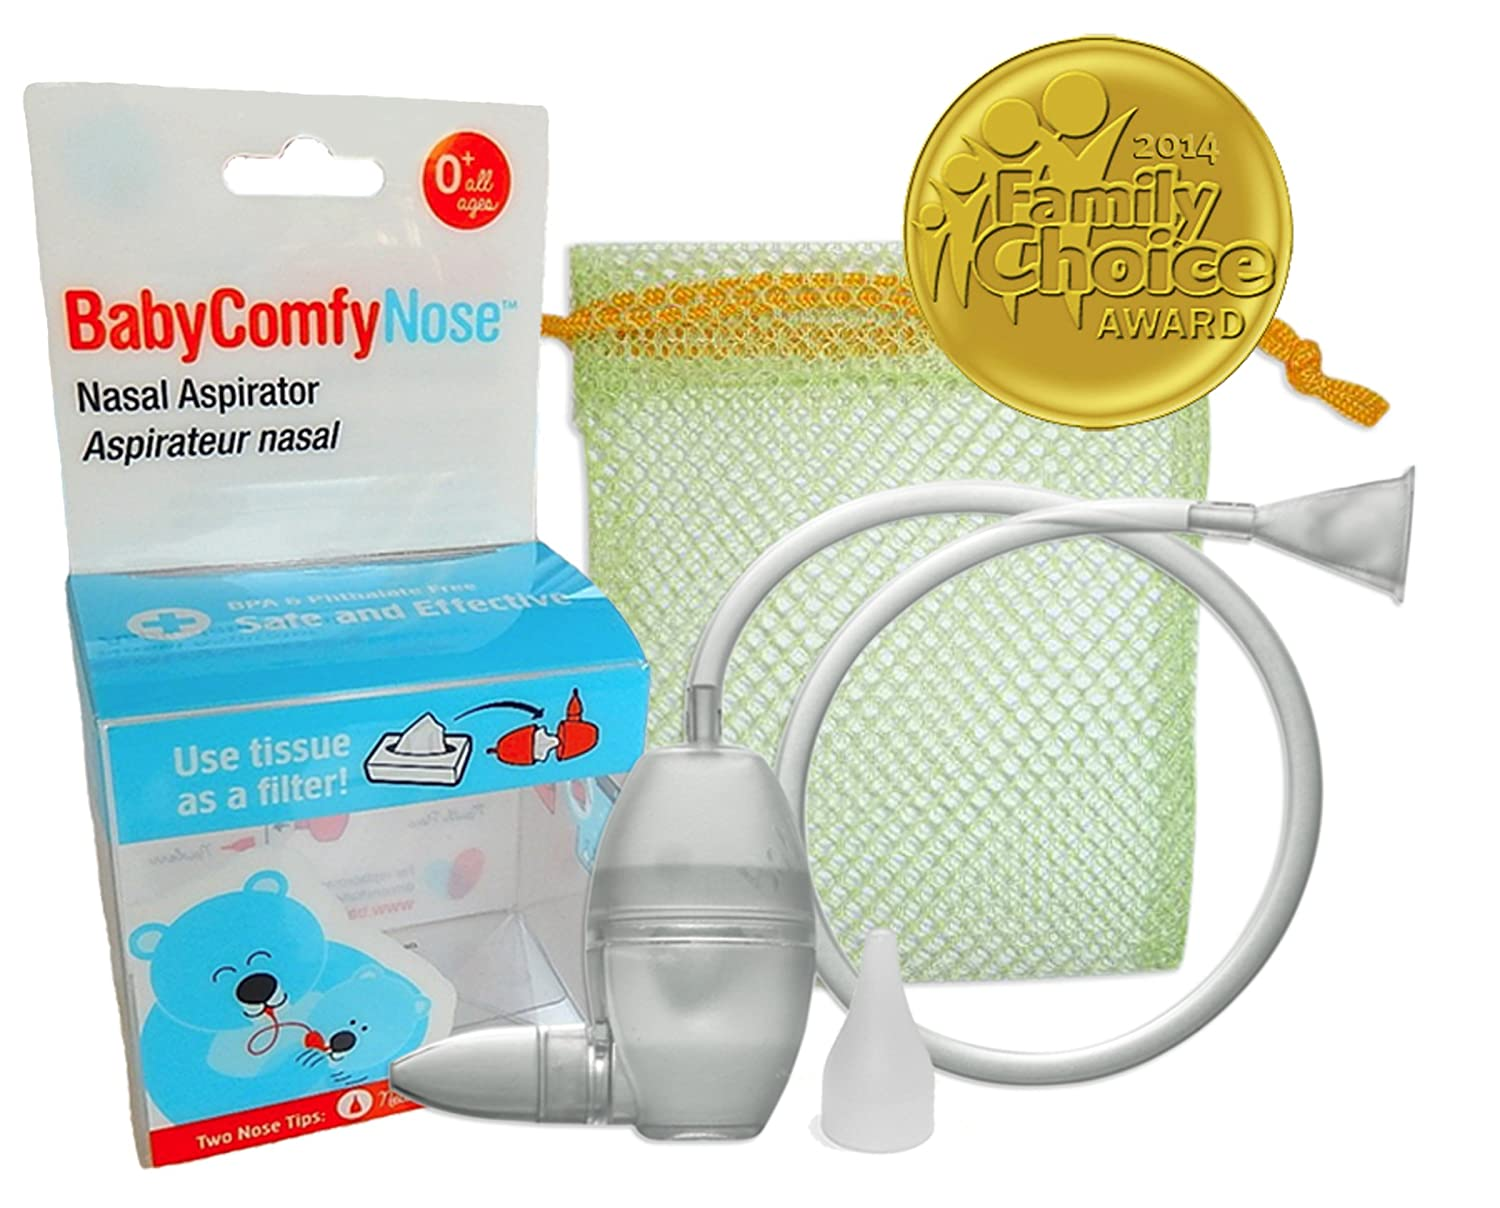 BabyComfy Nasal Aspirator - The Snotsucker - Hygienically & Safely Removes Baby's Nasal Mucus – Clear Baby Comfy Nose BCNC